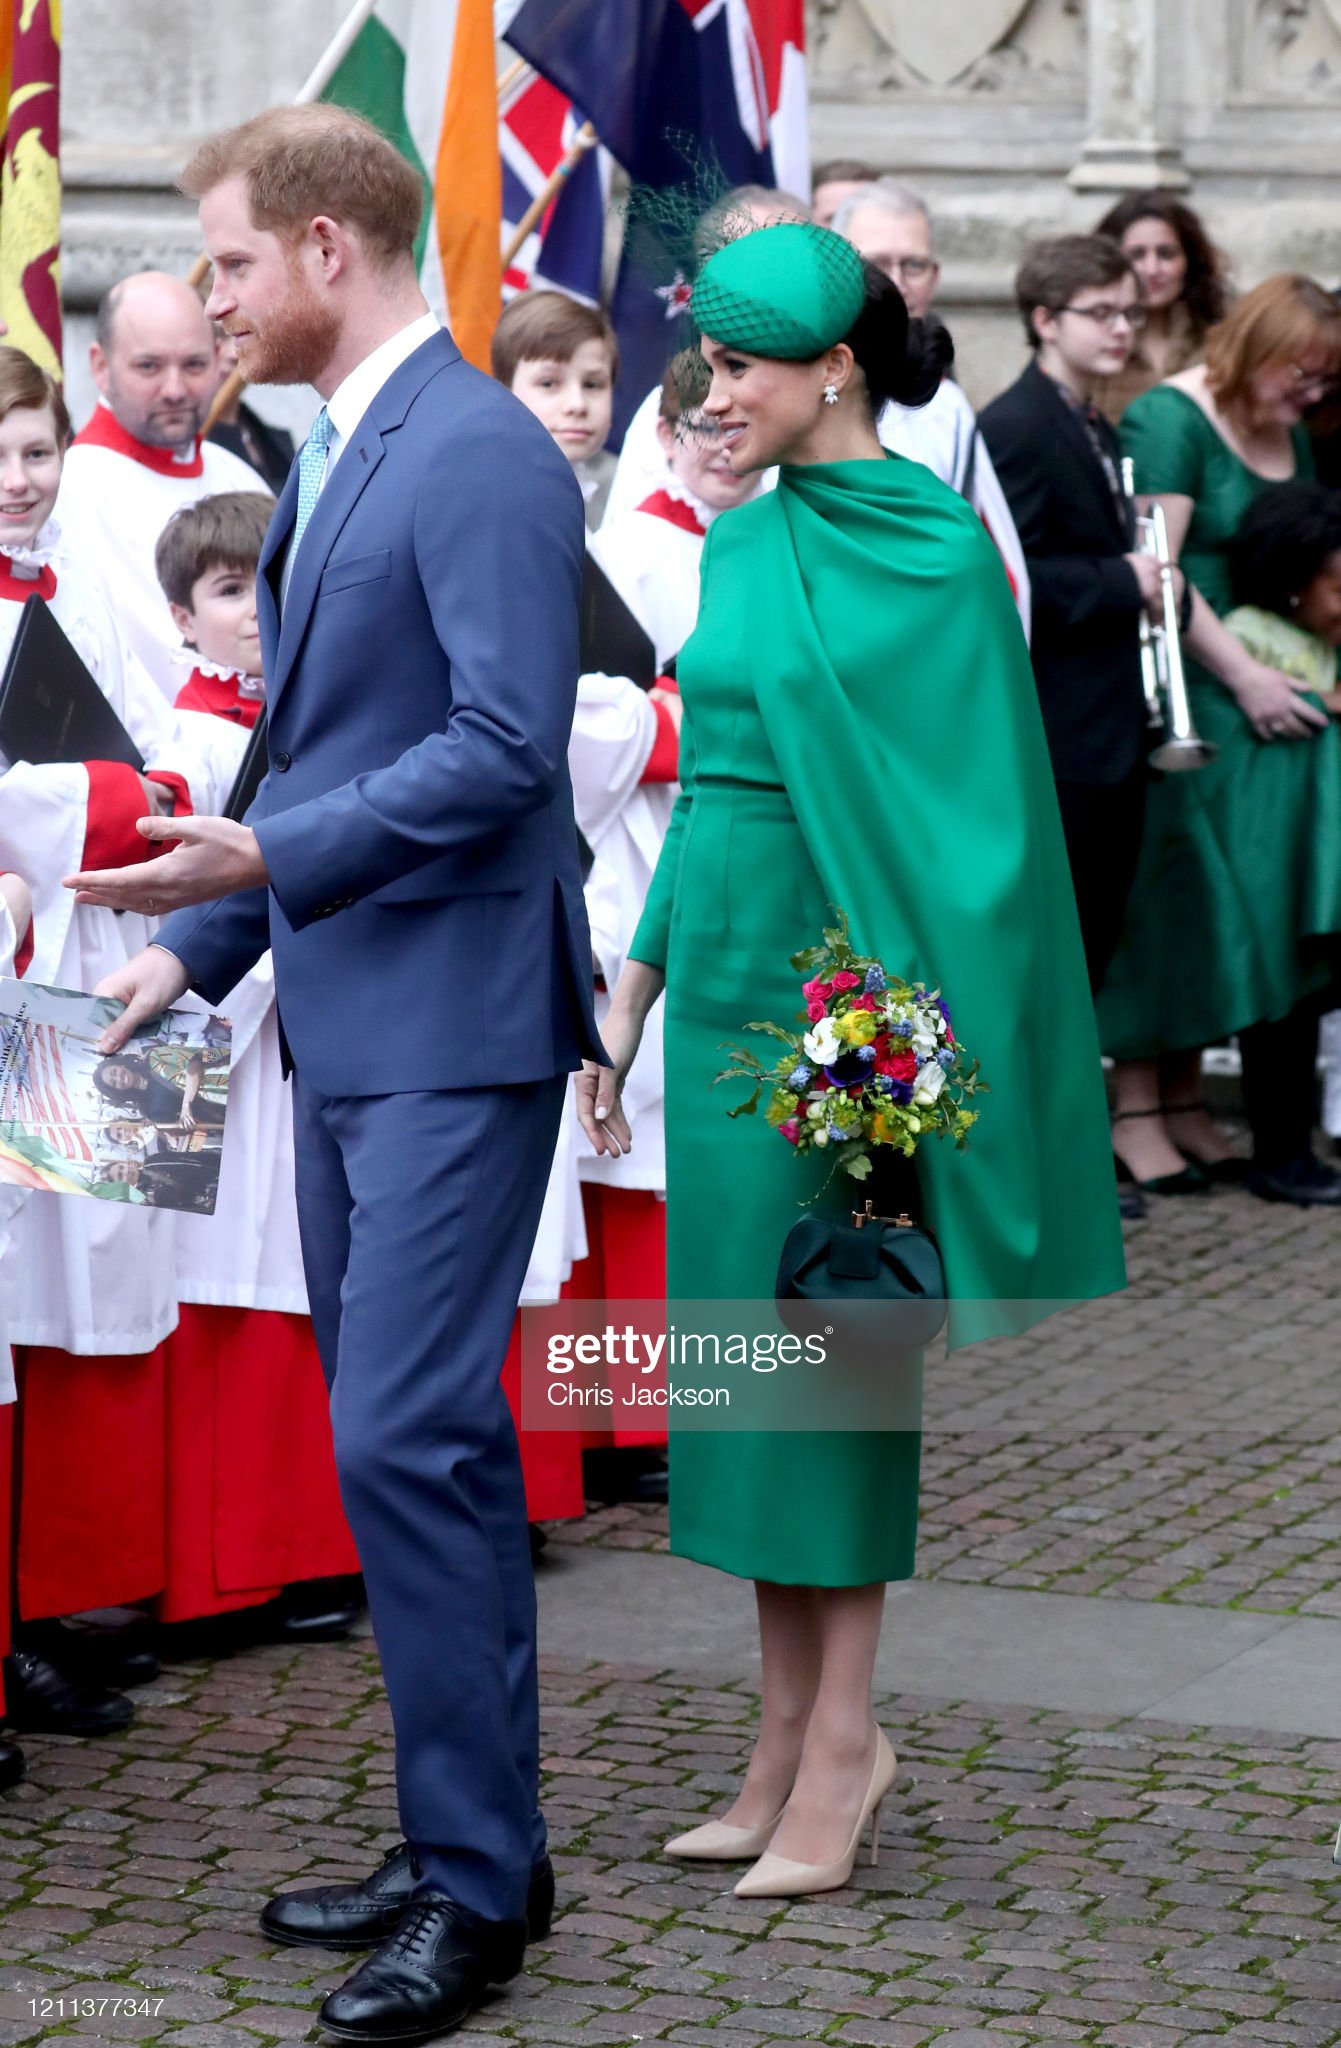 https://media.gettyimages.com/photos/meghan-duchess-of-sussex-and-prince-harry-duke-of-sussex-depart-the-picture-id1211377347?s=2048x2048